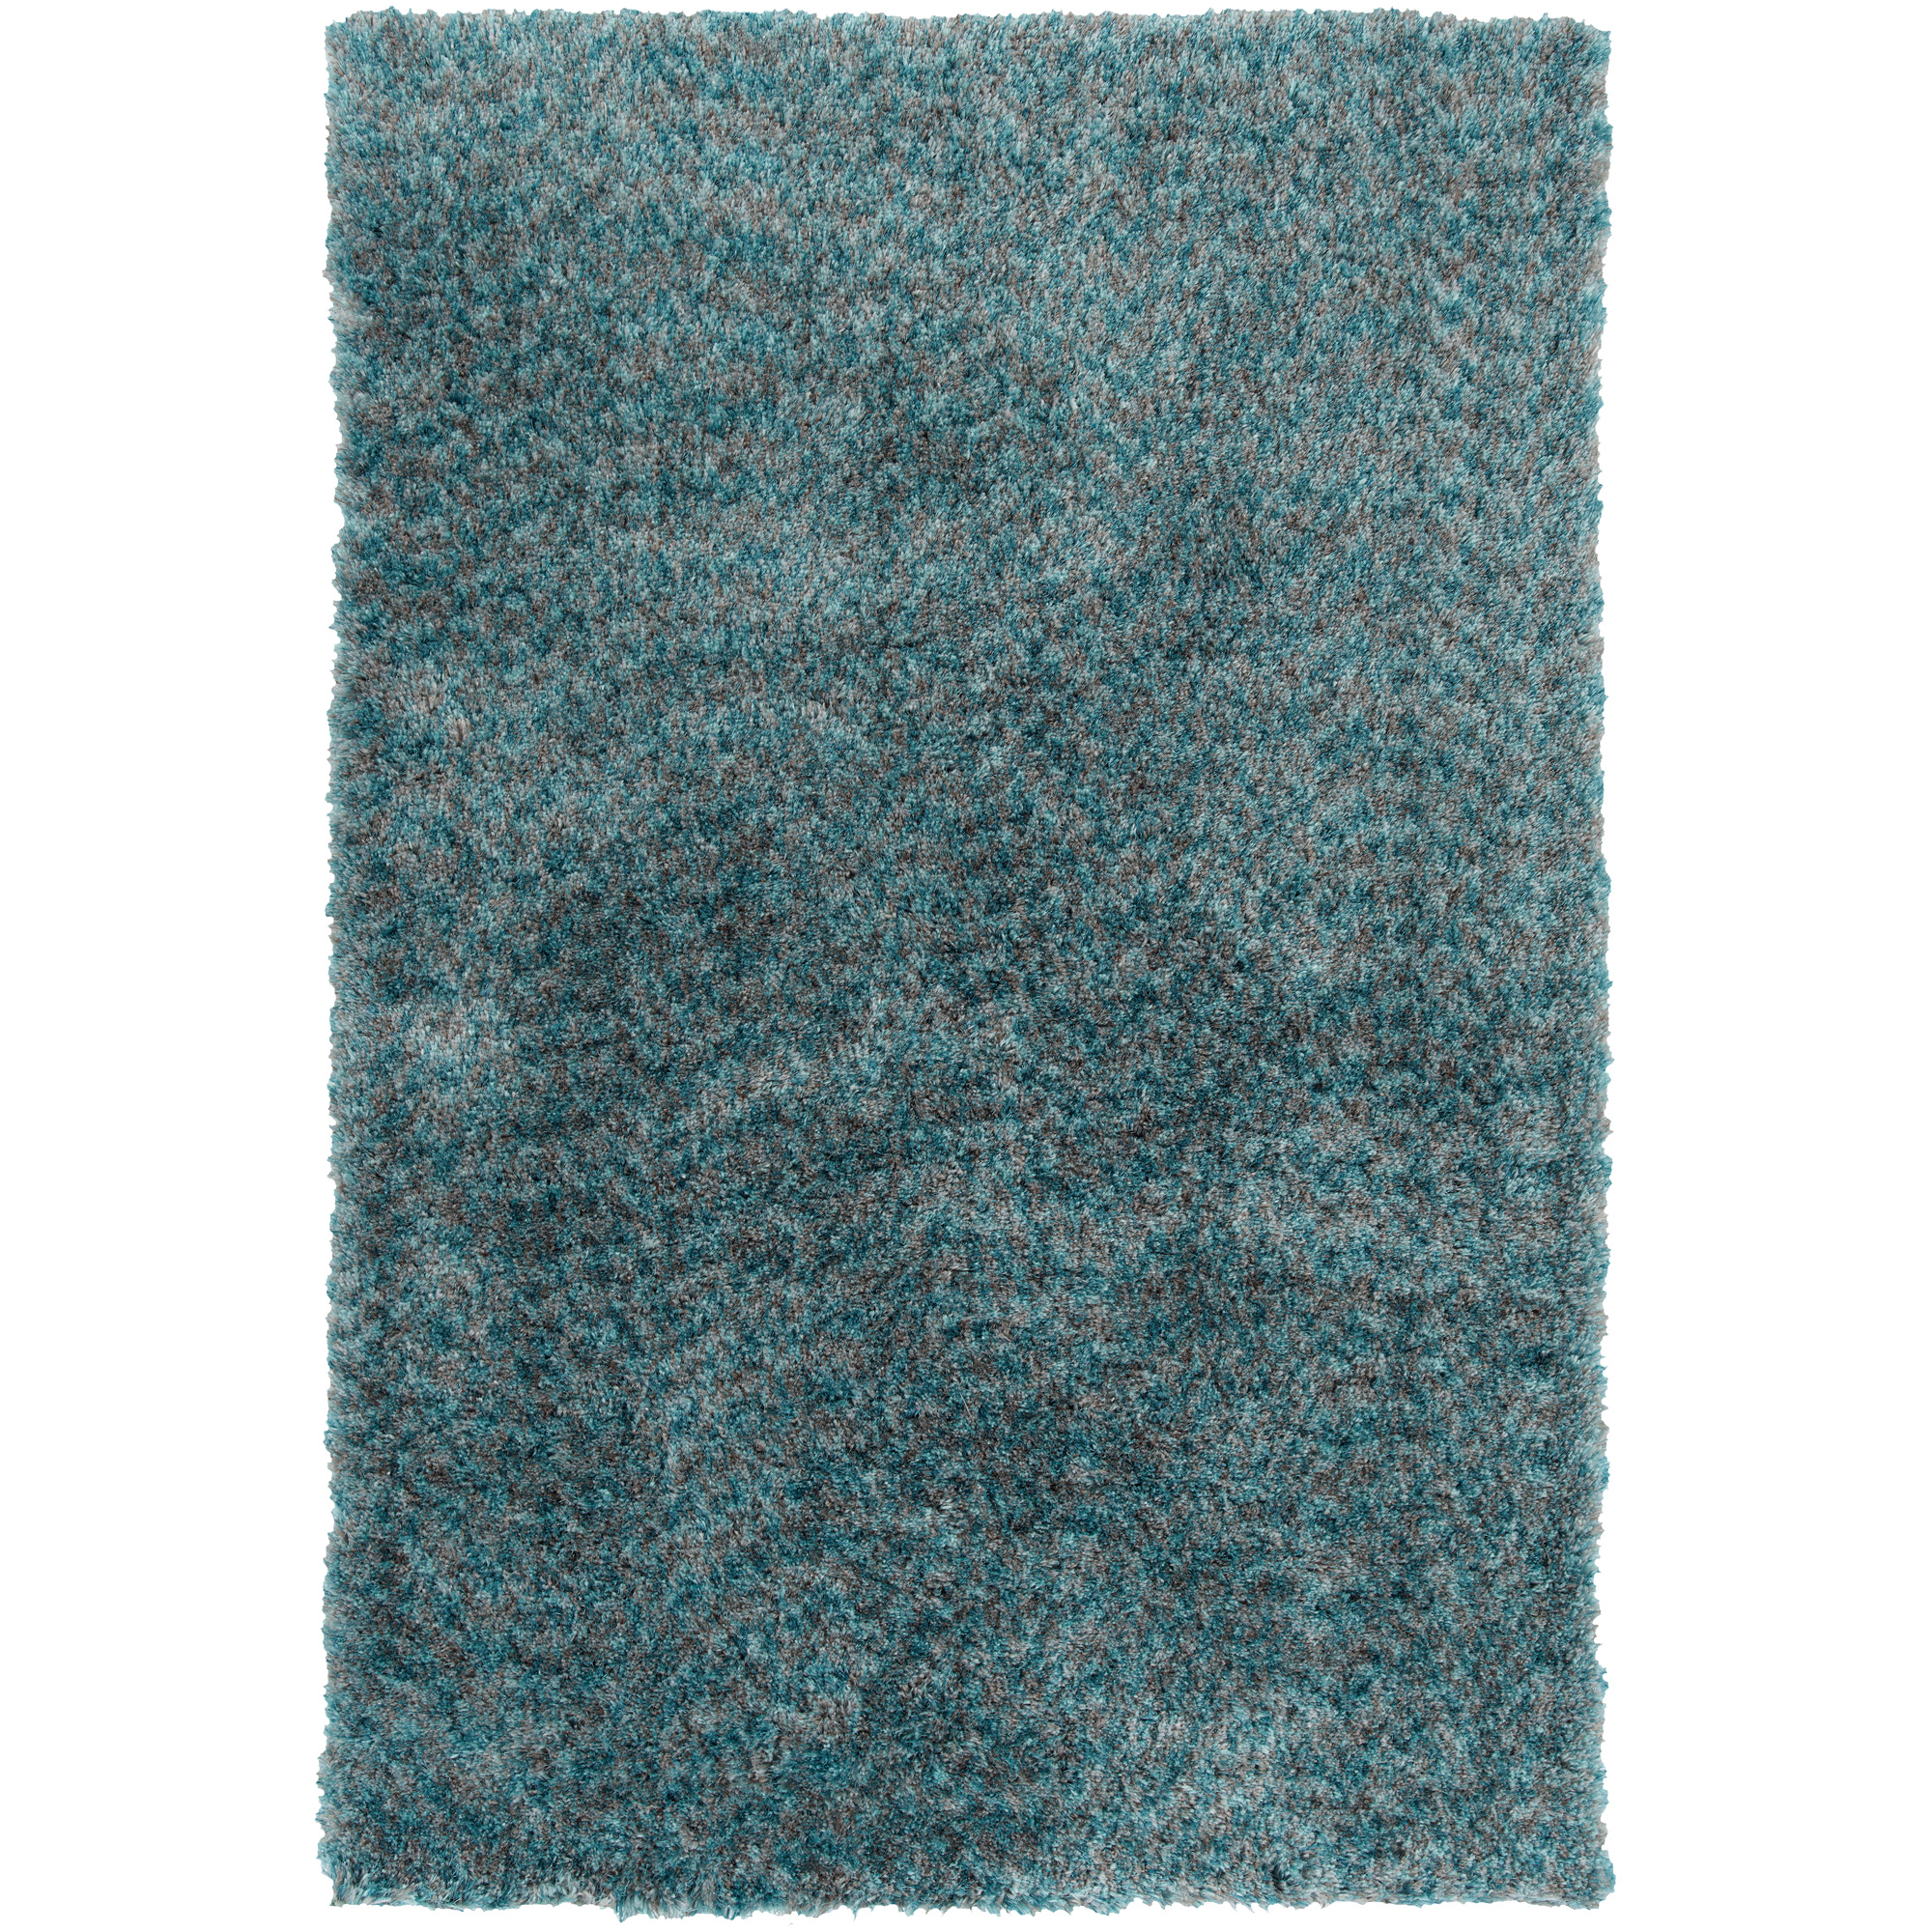 Dalyn Rug | Cabot Teal 5x8 Area Rug